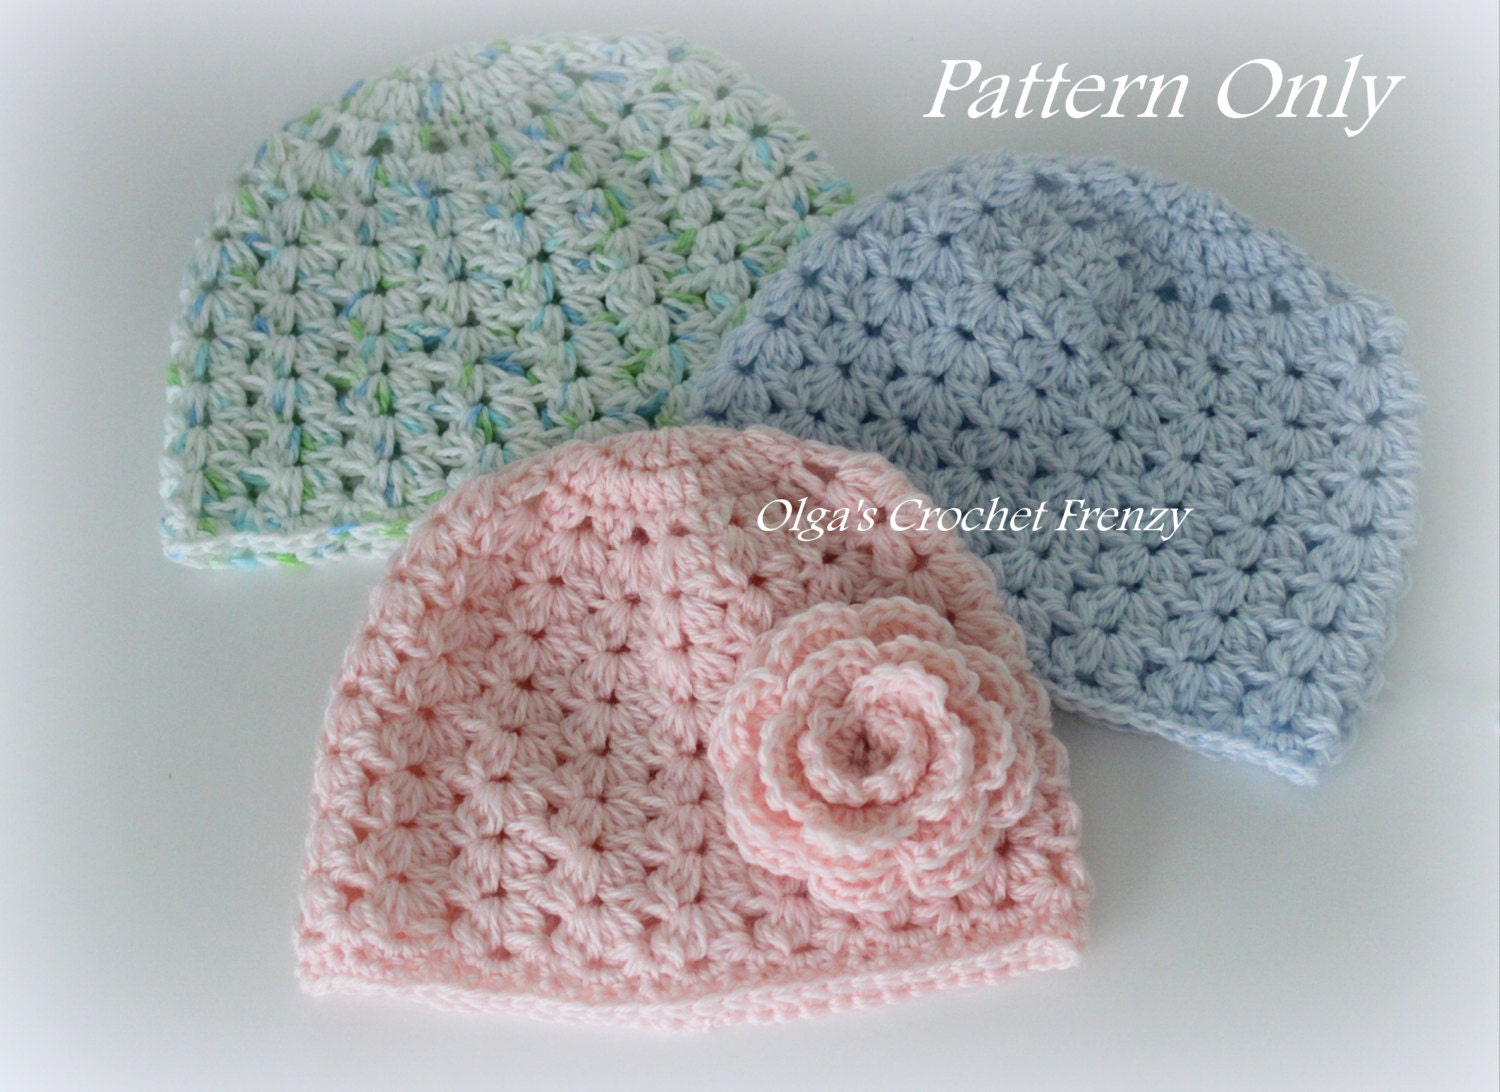 Crochet Baby Hat Patterns 0 3 Months : Crochet Baby Hat Pattern Size 3 6 Months Very Detailed